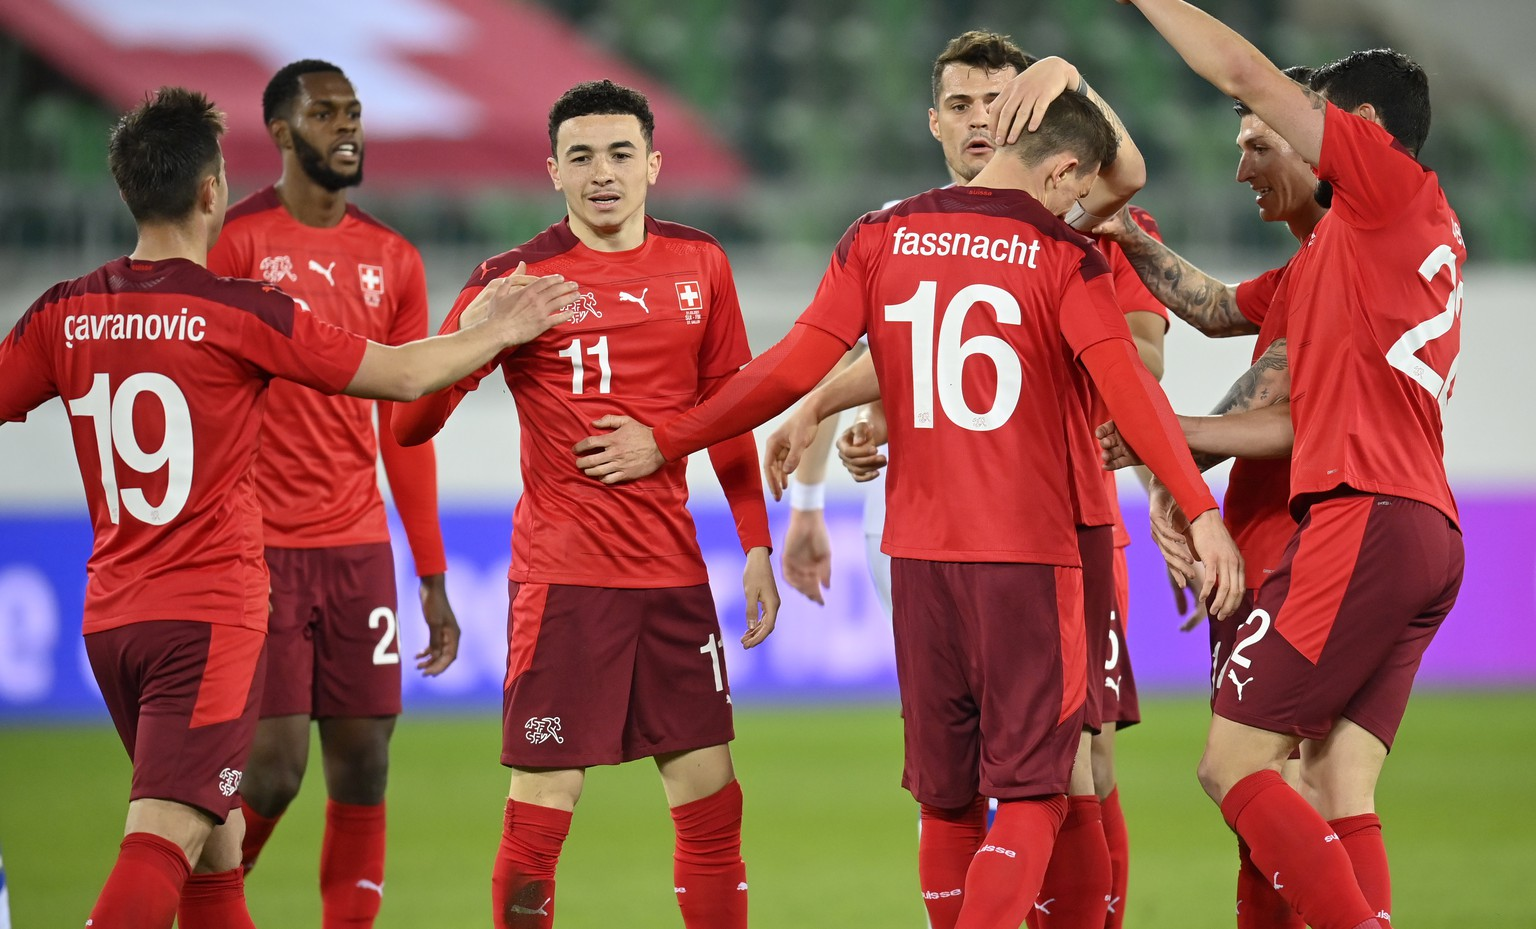 epa09109379 Switzerland's Ruben Vargas (3-L) celebrates with teammates after scoring the 2-2 equalizer during the International Friendly soccer match between Switzerland and Finland in St. Gallen, Switzerland, 31 March 2021.  EPA/GIAN EHRENZELLER